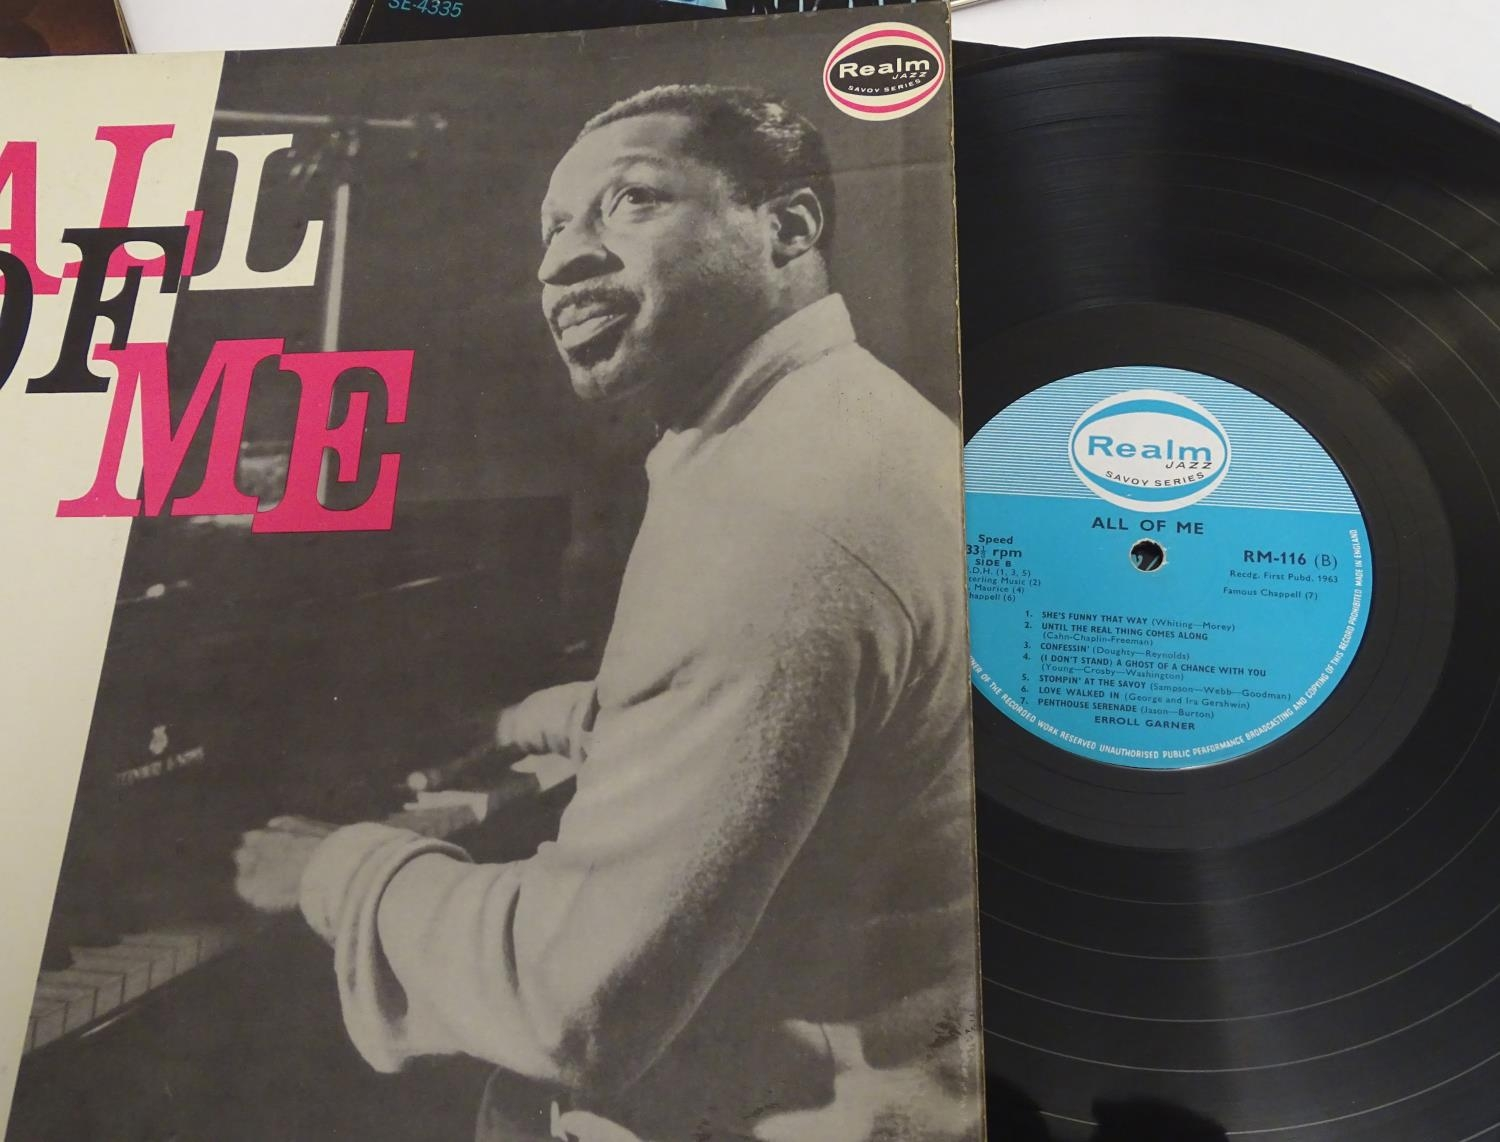 A collection of 20thC 33 rpm Vinyl records / LPs, - Jazz, comprising: The Eddie Condon Floor Show 2, - Image 10 of 19